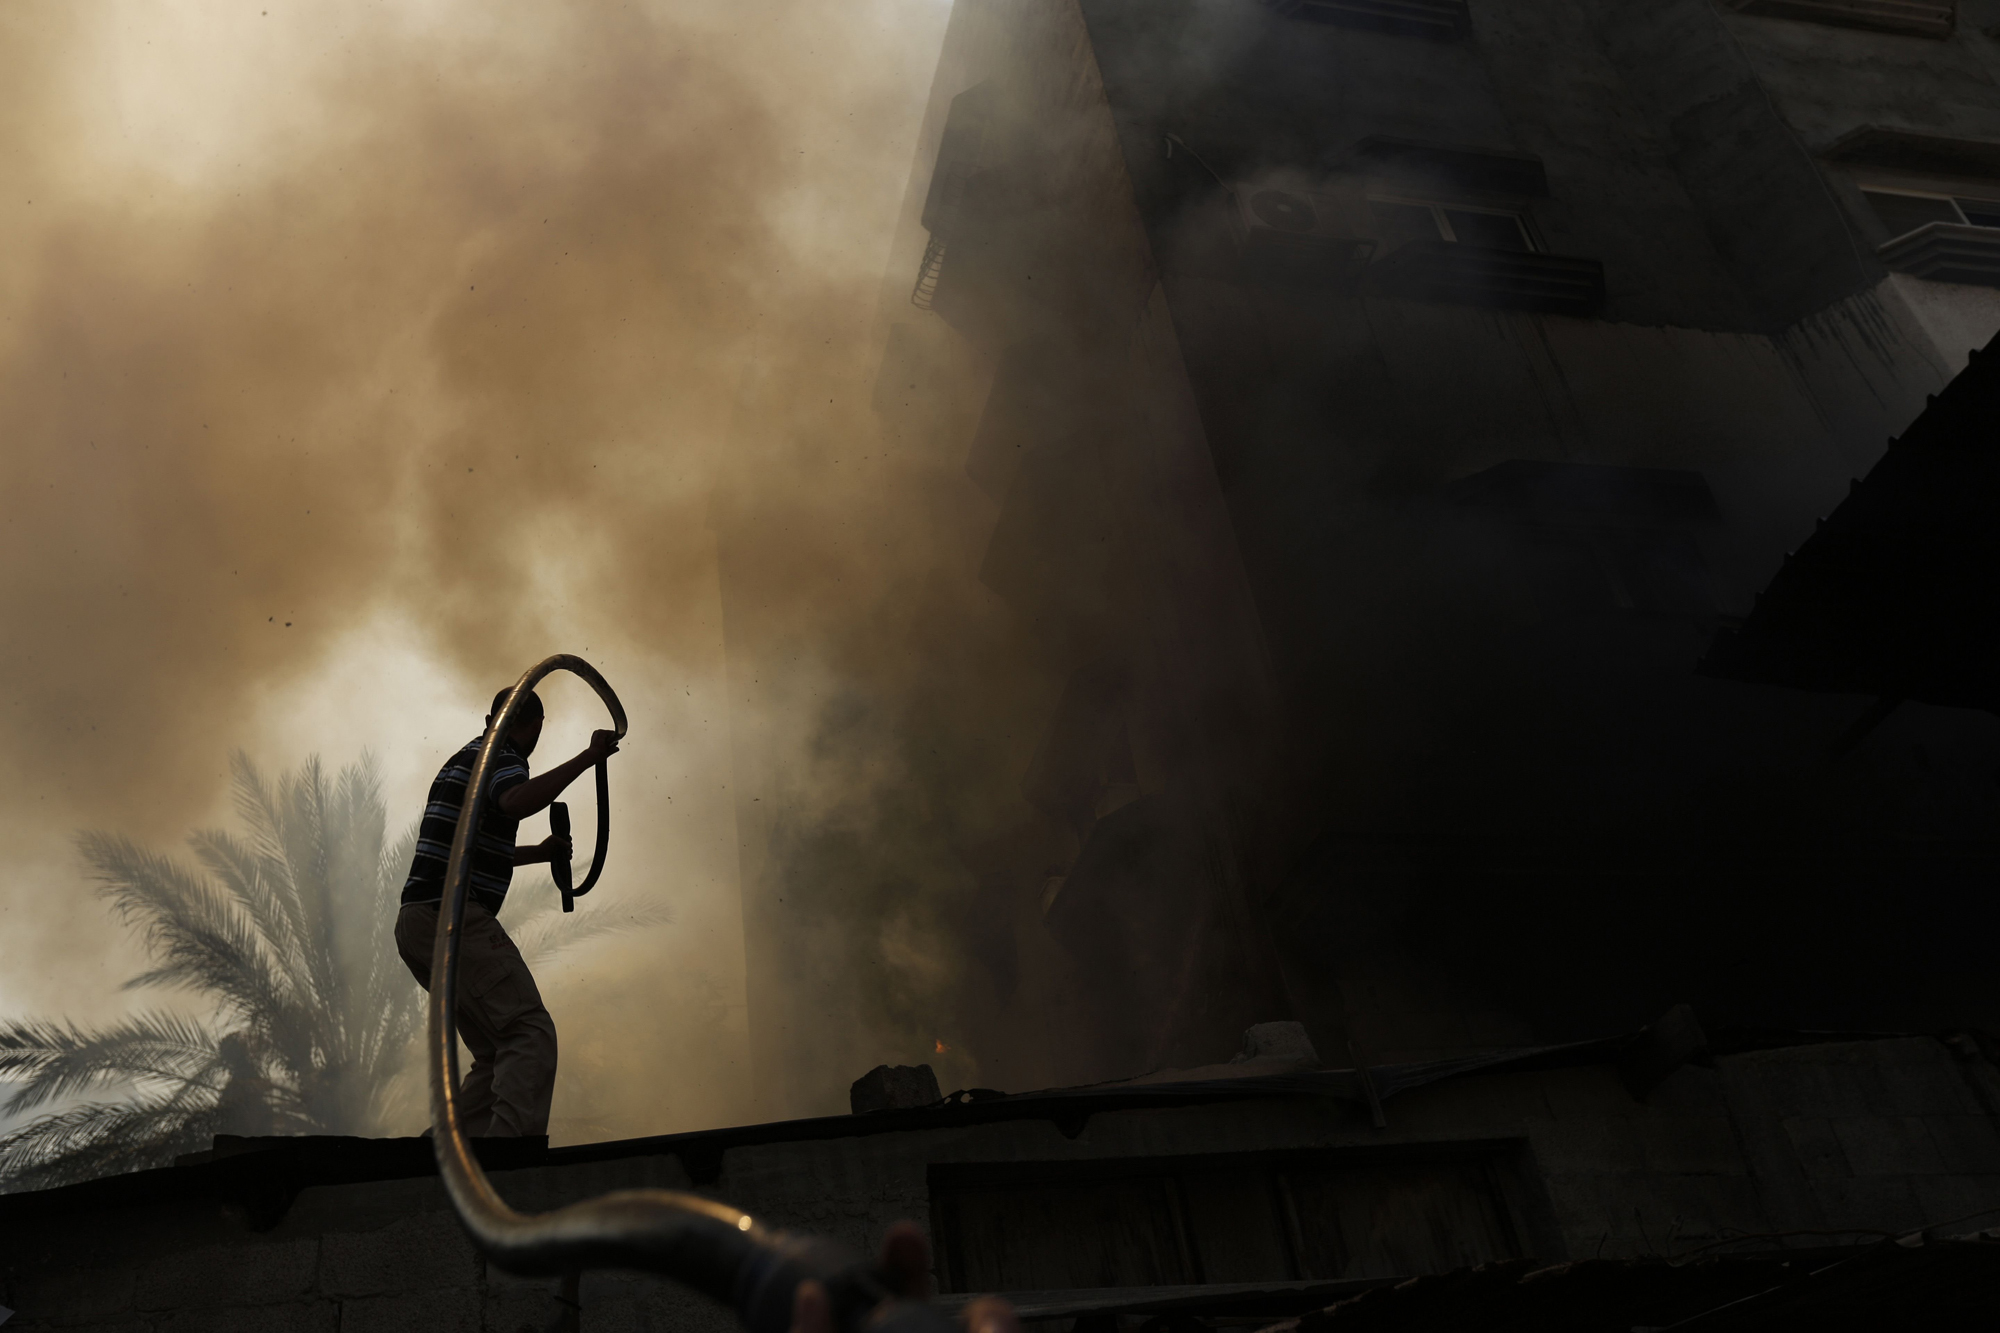 A Palestinian man battles a building on fire following several Israeli strikes on Gaza City on July 30, 2014.